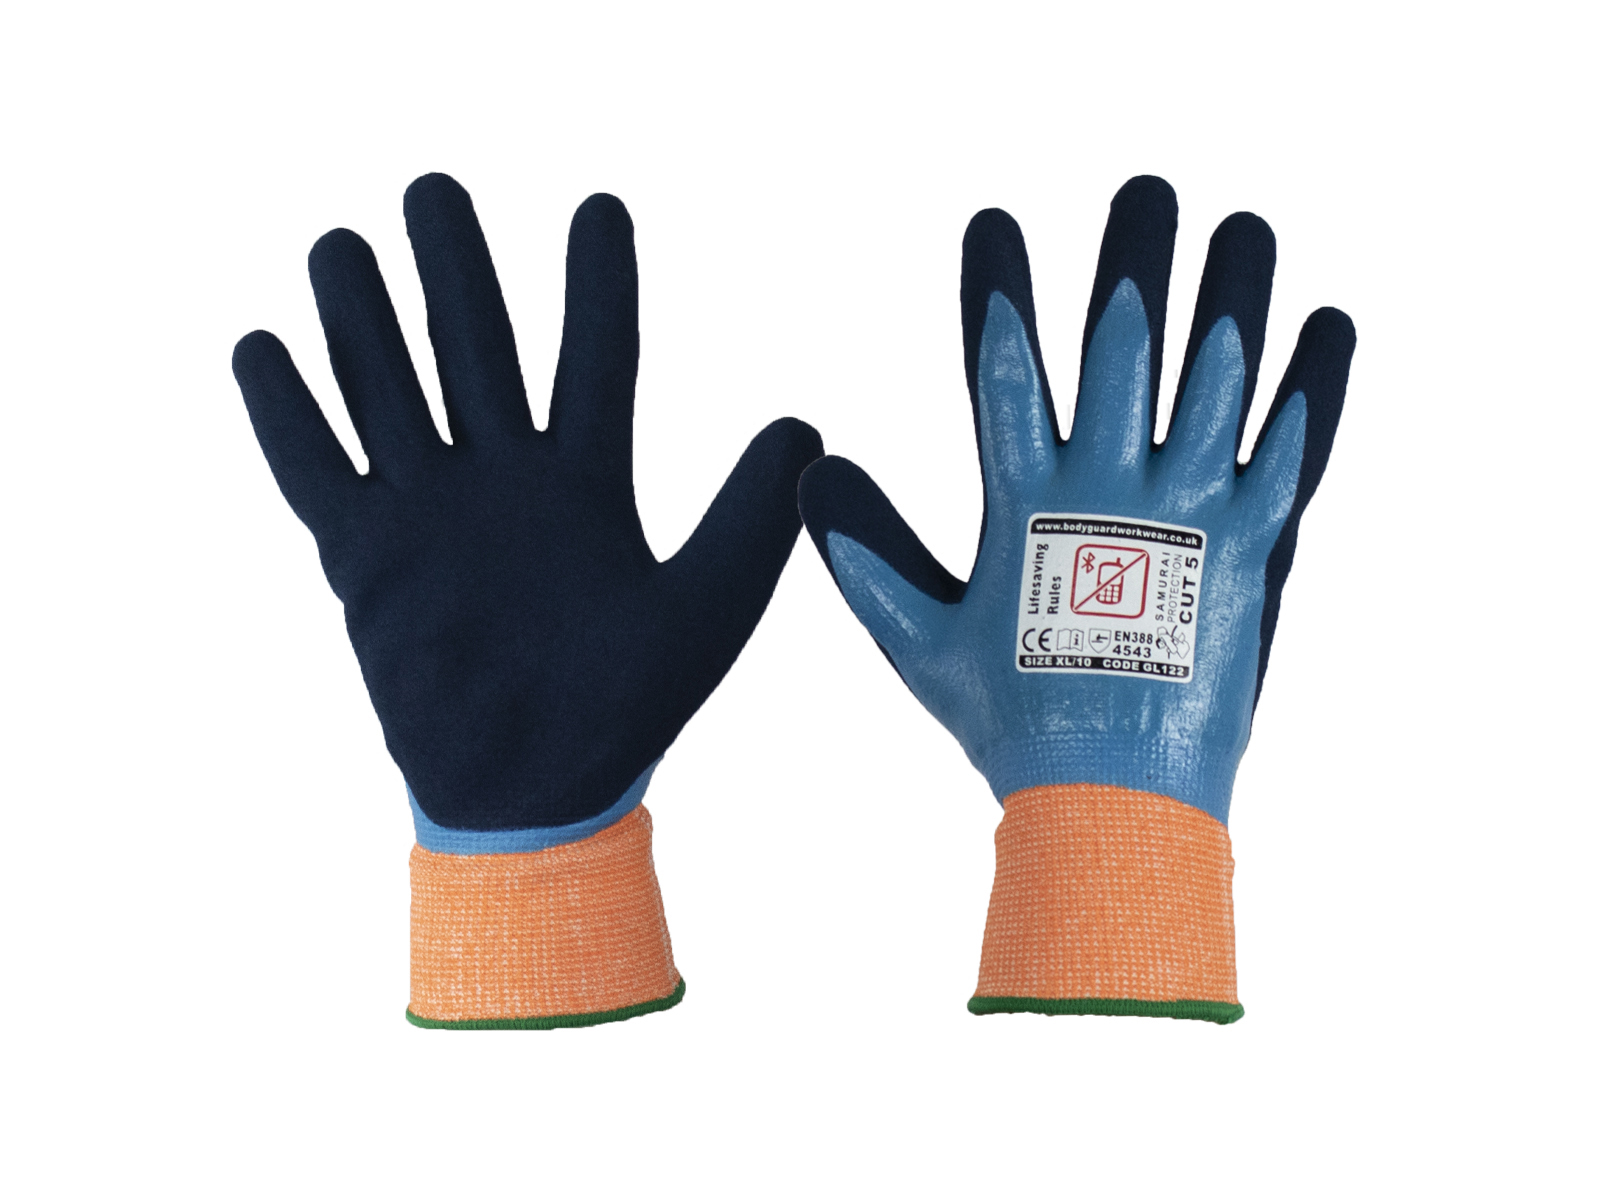 Samurai Wet Cut 5 Safety Glove w/ Complete Waterproof Front and Back